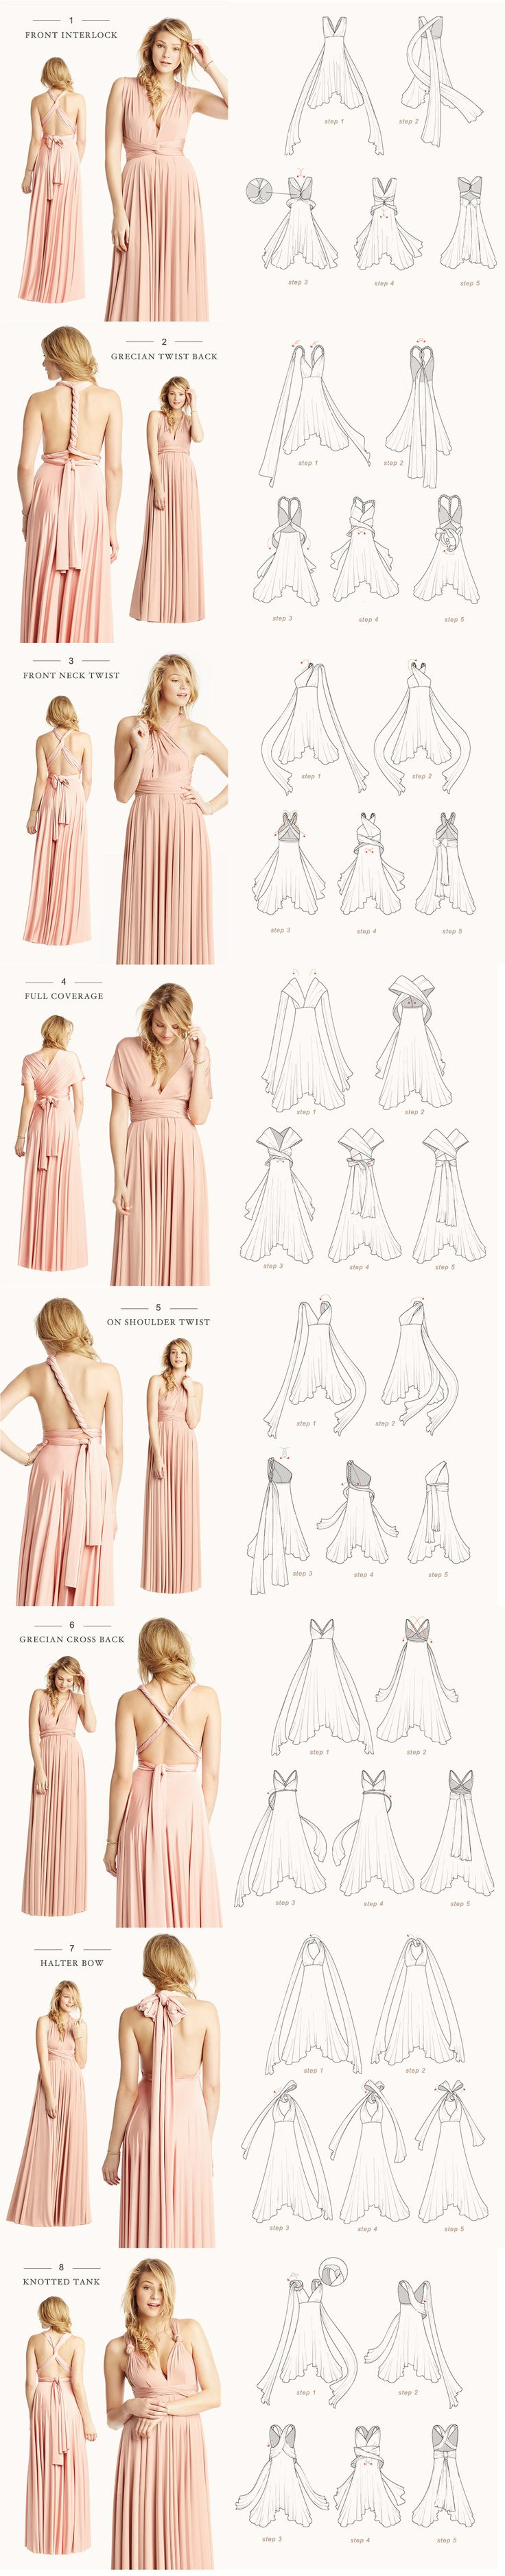 How to tie an infinity dress                                                                                                                                                                                 More